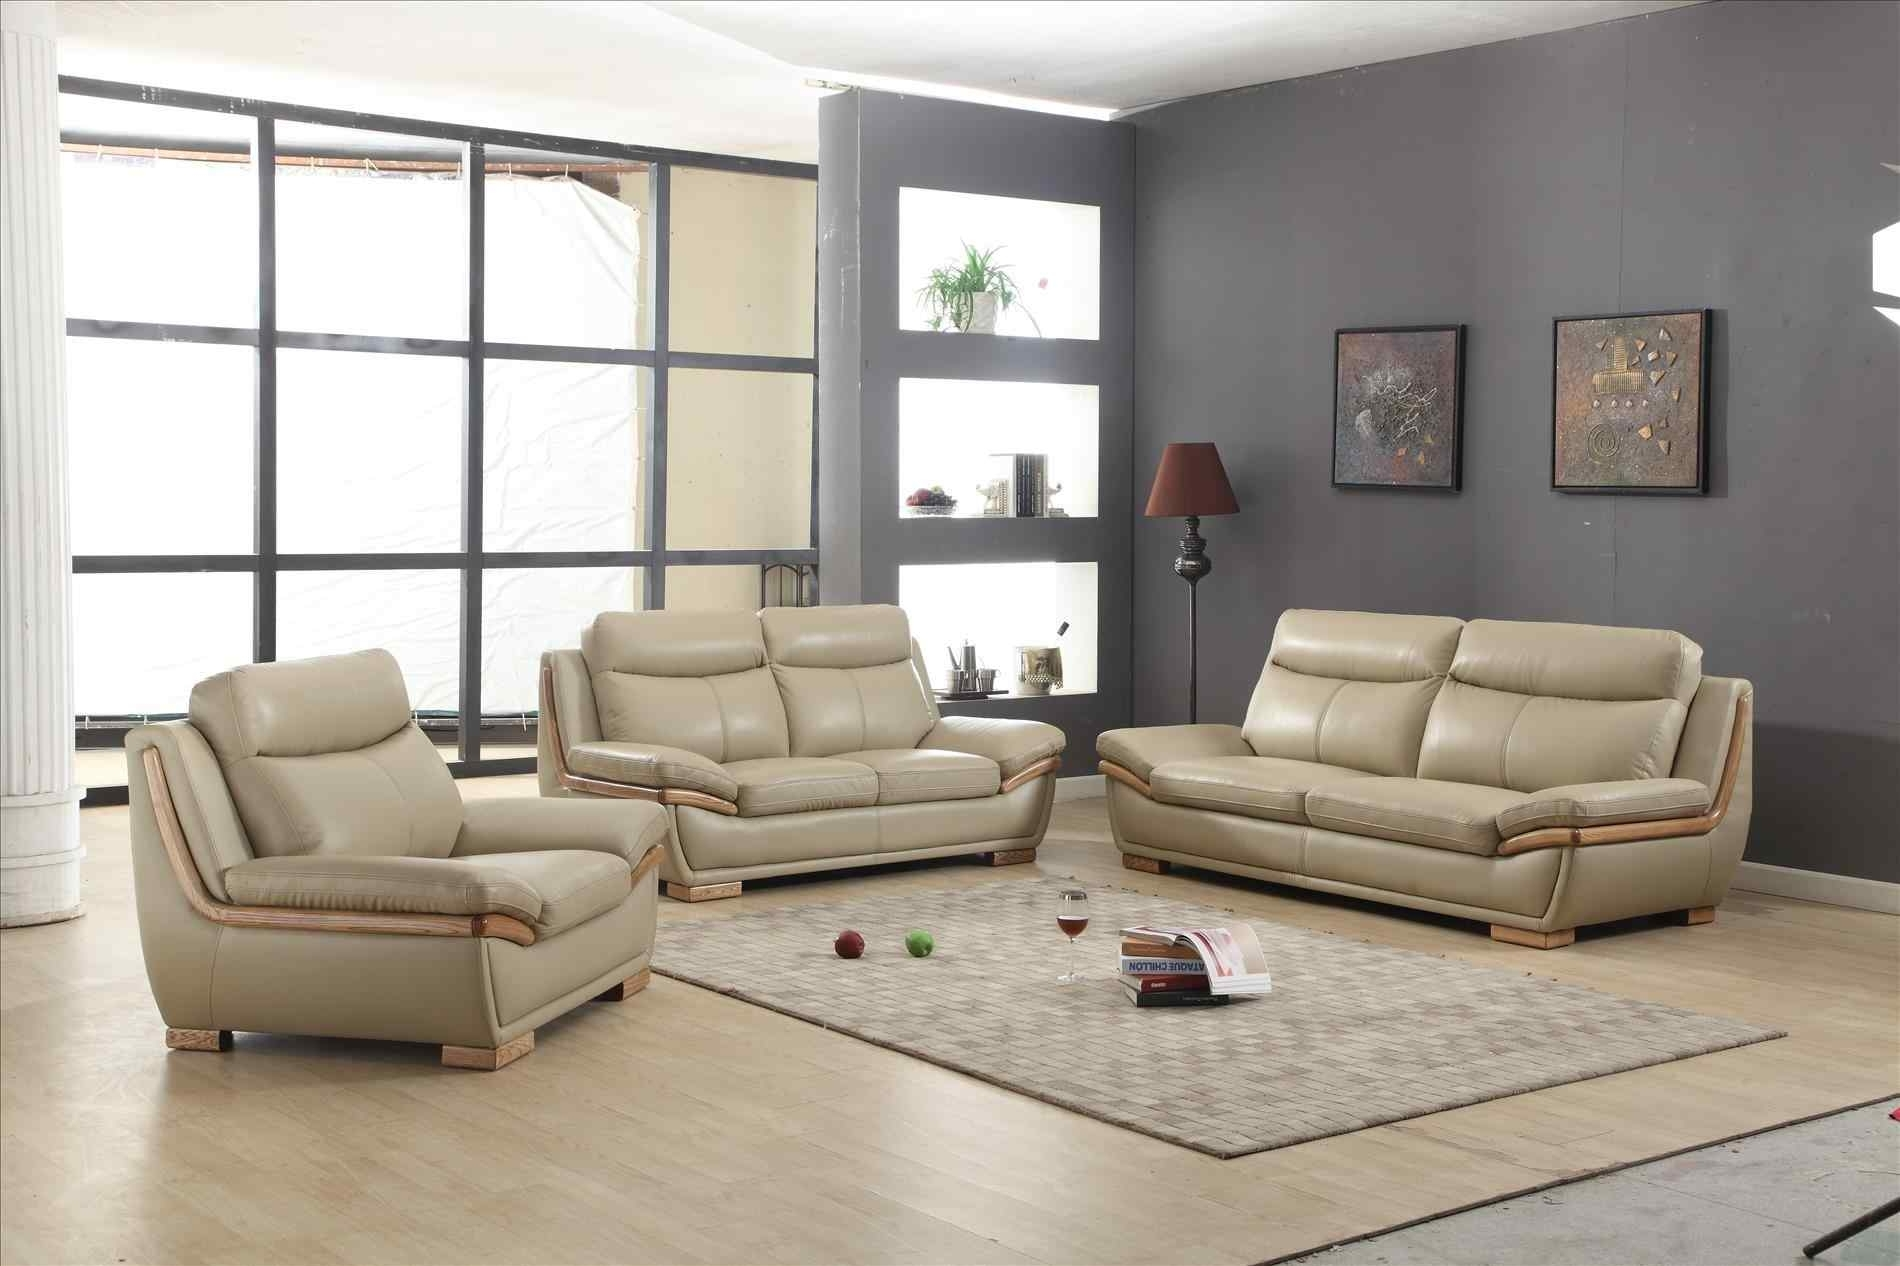 The Images Collection Of Couch Leather Modern Sectional Sofa Plus For San Francisco Sectional Sofas (View 9 of 10)